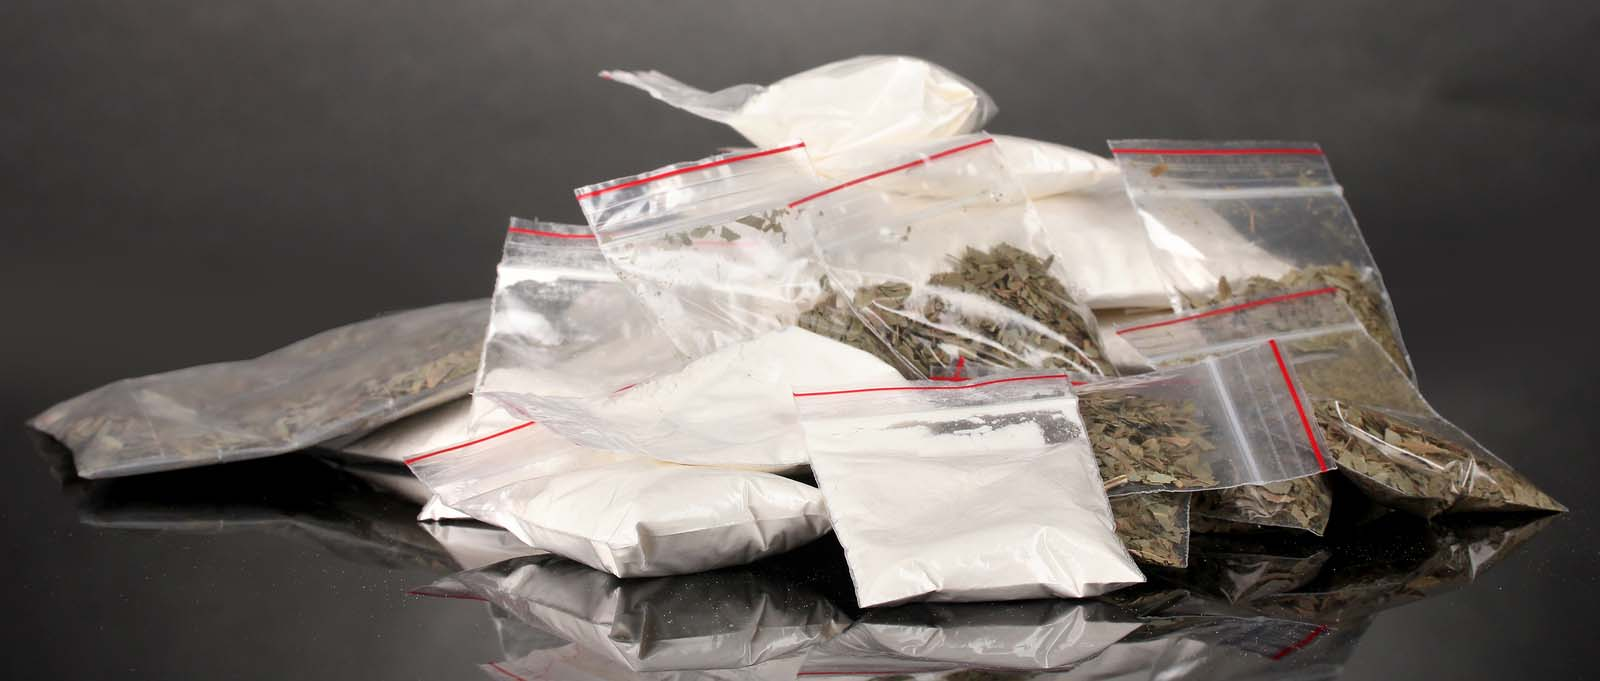 Drug Possession and Drug Trafficking in Ontario